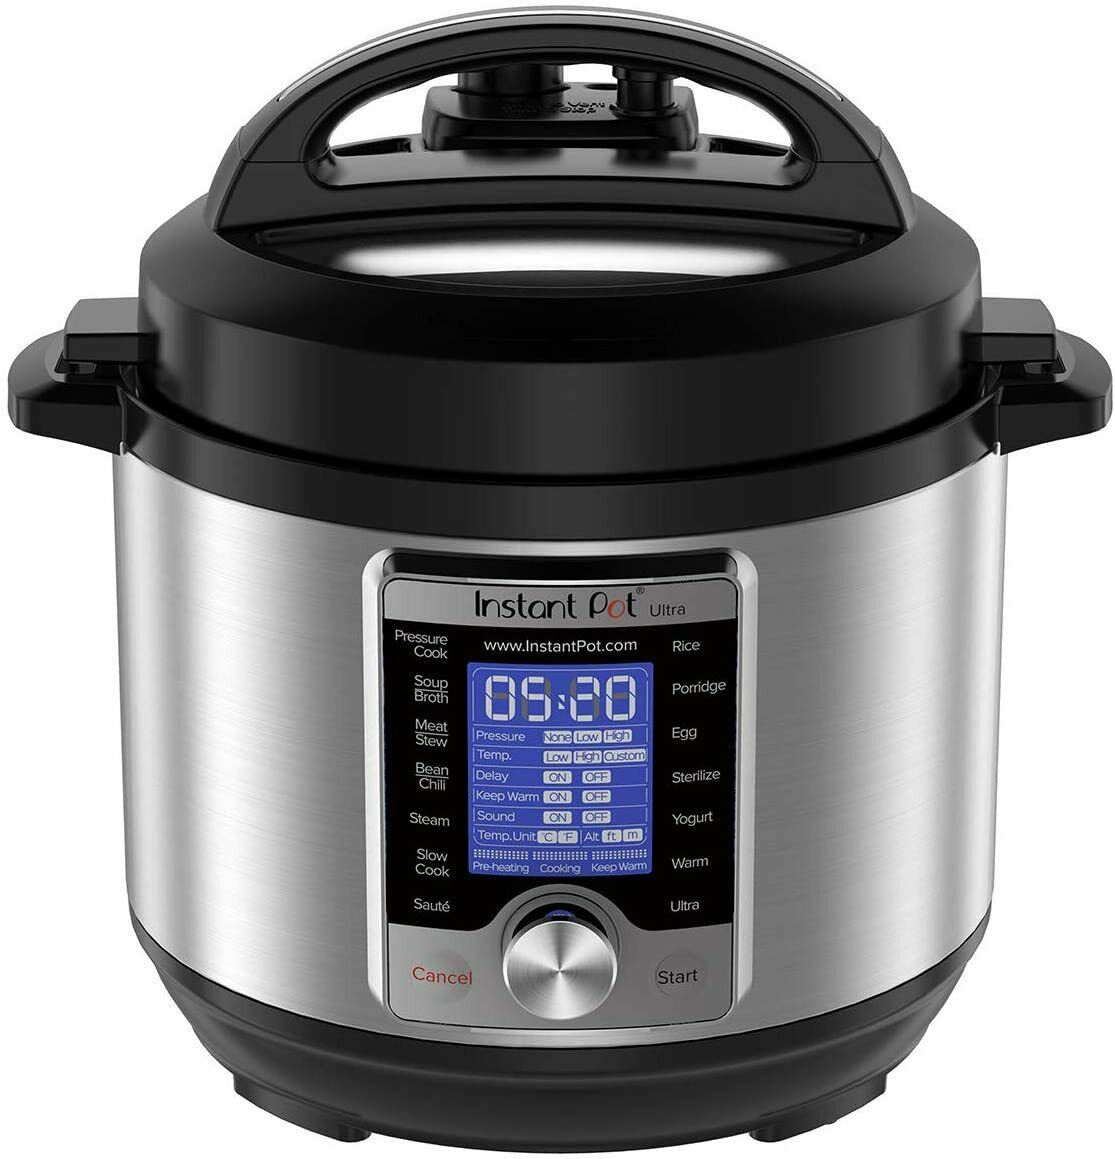 Instant Pot Ultra 3 Qt 10-in-1 Multi- Use Programmable Press